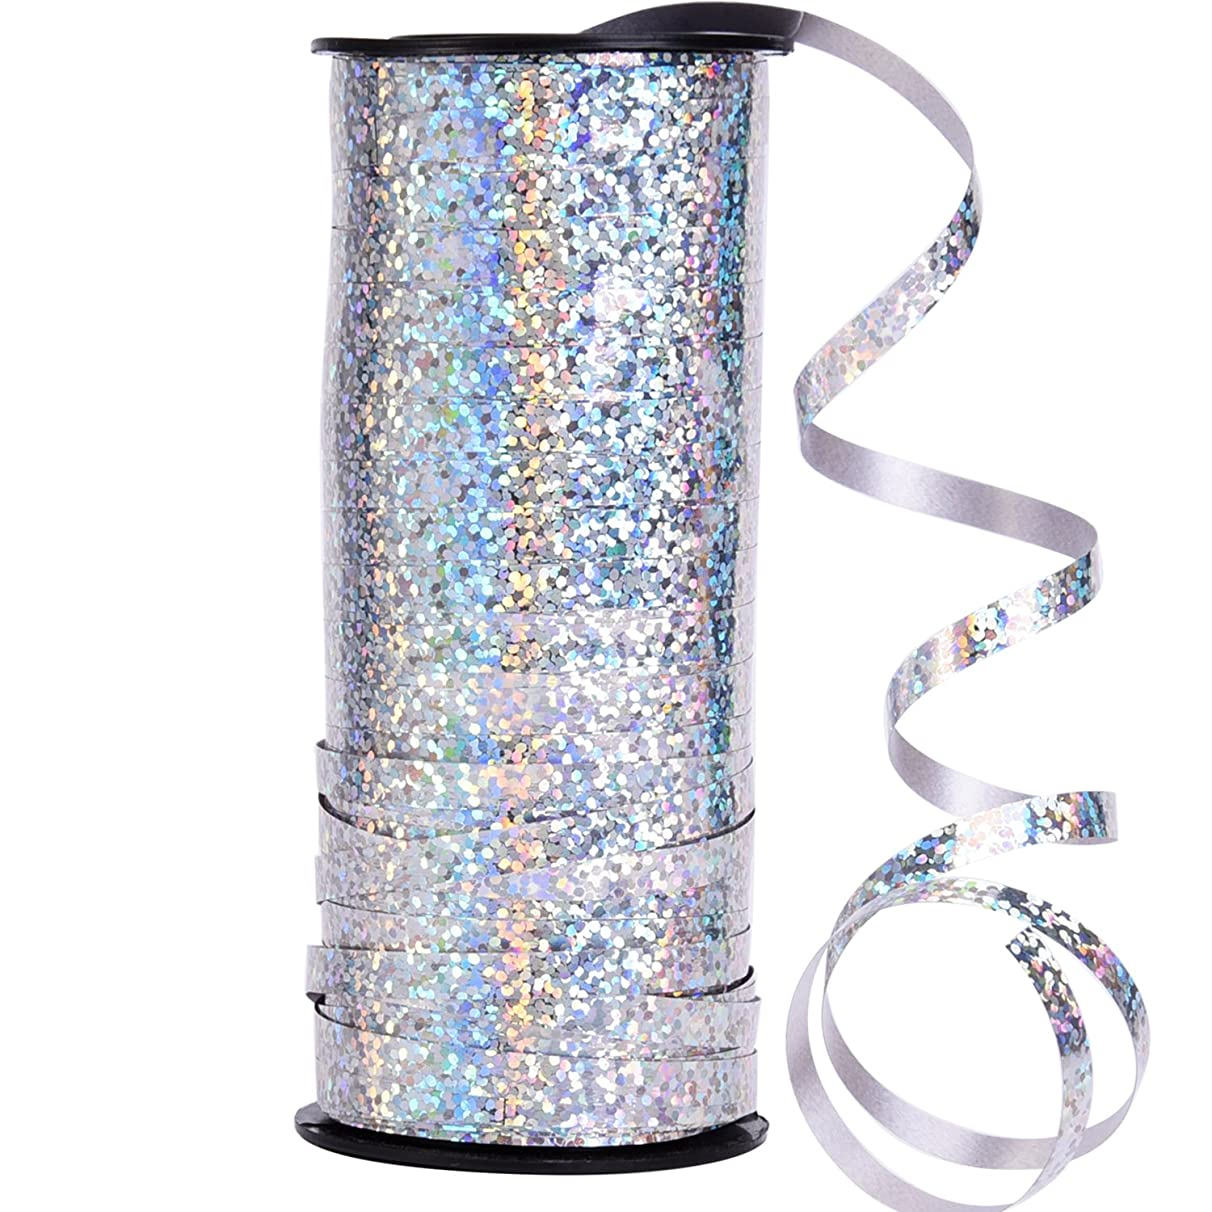 Outus Crimped Curling Ribbon Roll Silver Balloon Ribbons for Parties, Festival, Florist, Crafts and Gift Wrapping, 5 mm, 100 Yard